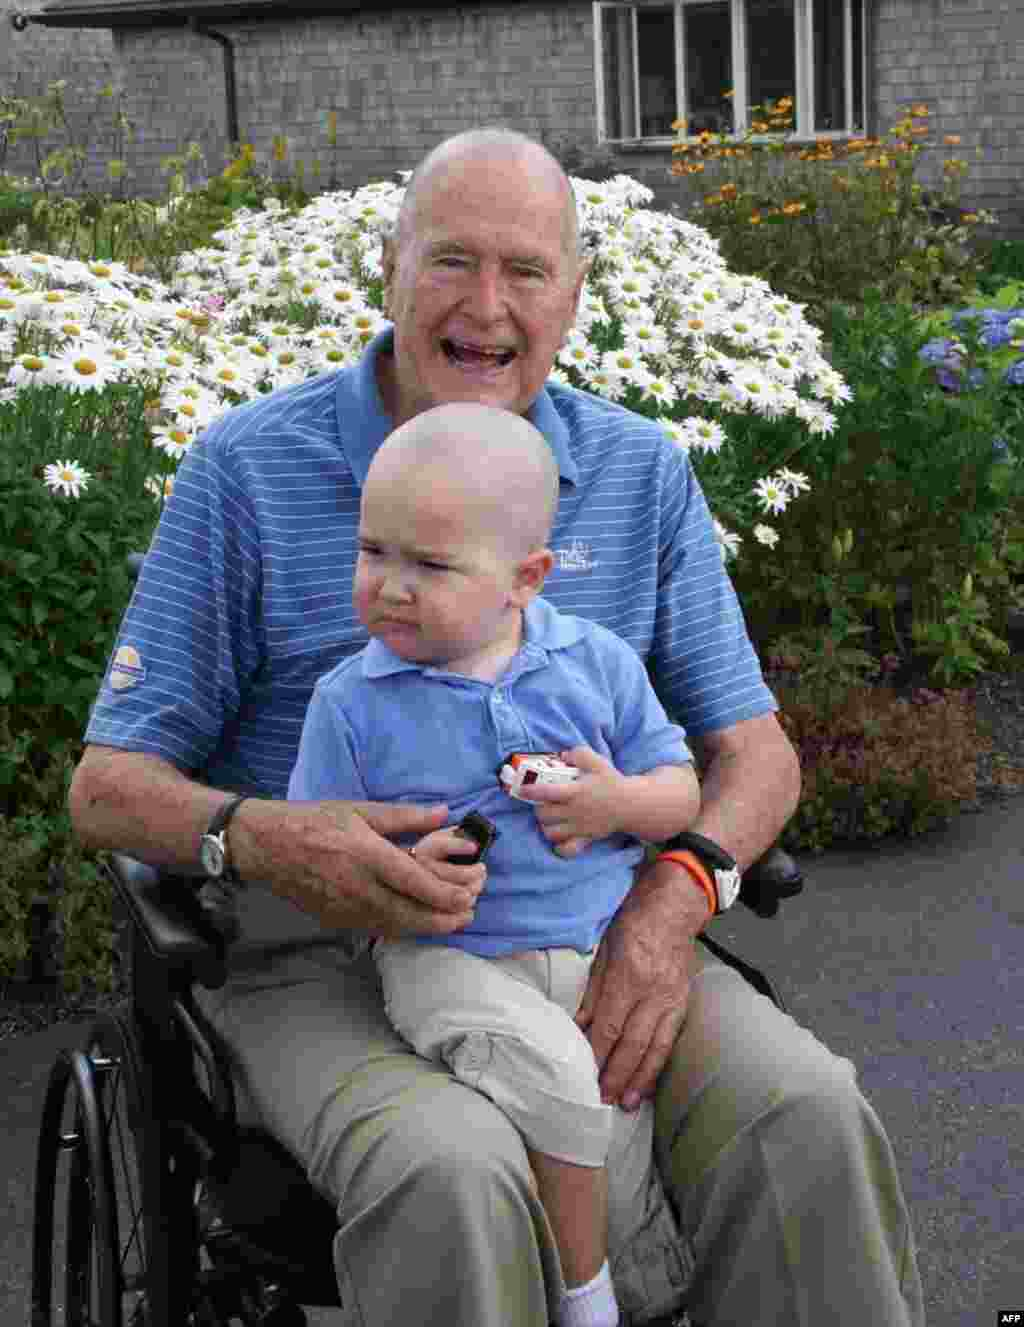 Former U.S. President George H.W. Bush poses in Maine with his head shaved to show support for 2-year-old Patrick, the son of one of Bush's security staff. His surname is being withheld at the family's request. Patrick has lost his hair from leukemia treatments. Some 26 other members of his security staff also shaved their heads. Bush and his wife, Barbara, lost a 4-year-old daughter, Robin, to leukemia nearly 60 years ago. (AFP/Office of George Bush)